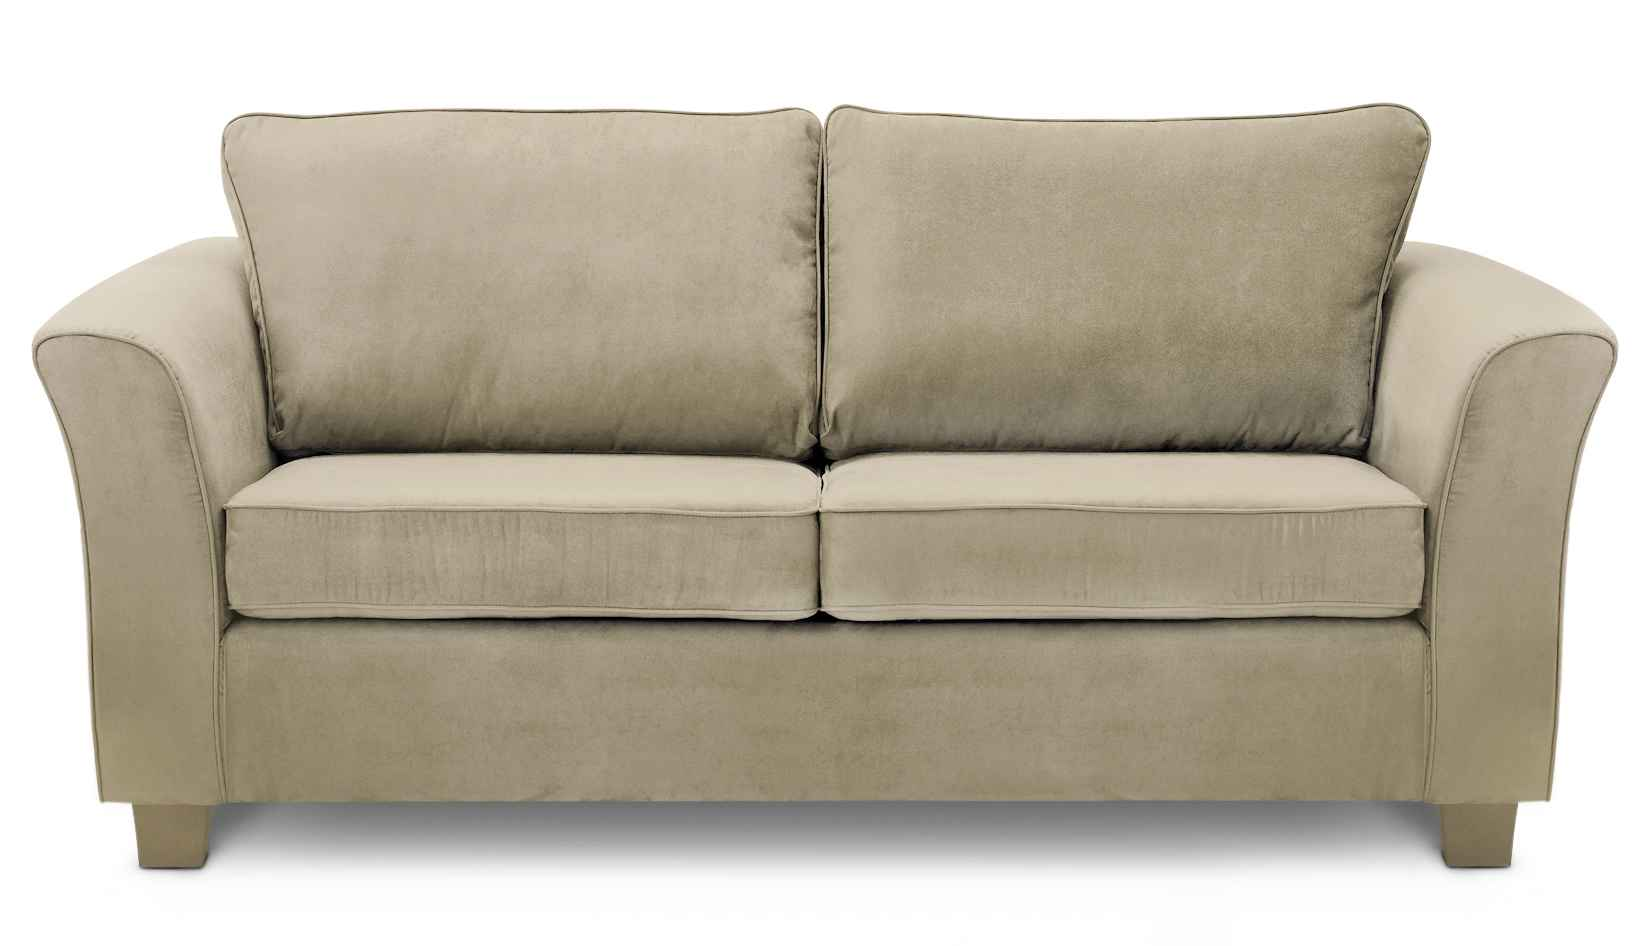 Cheap furniture feel the home for Cheap nice couches for sale